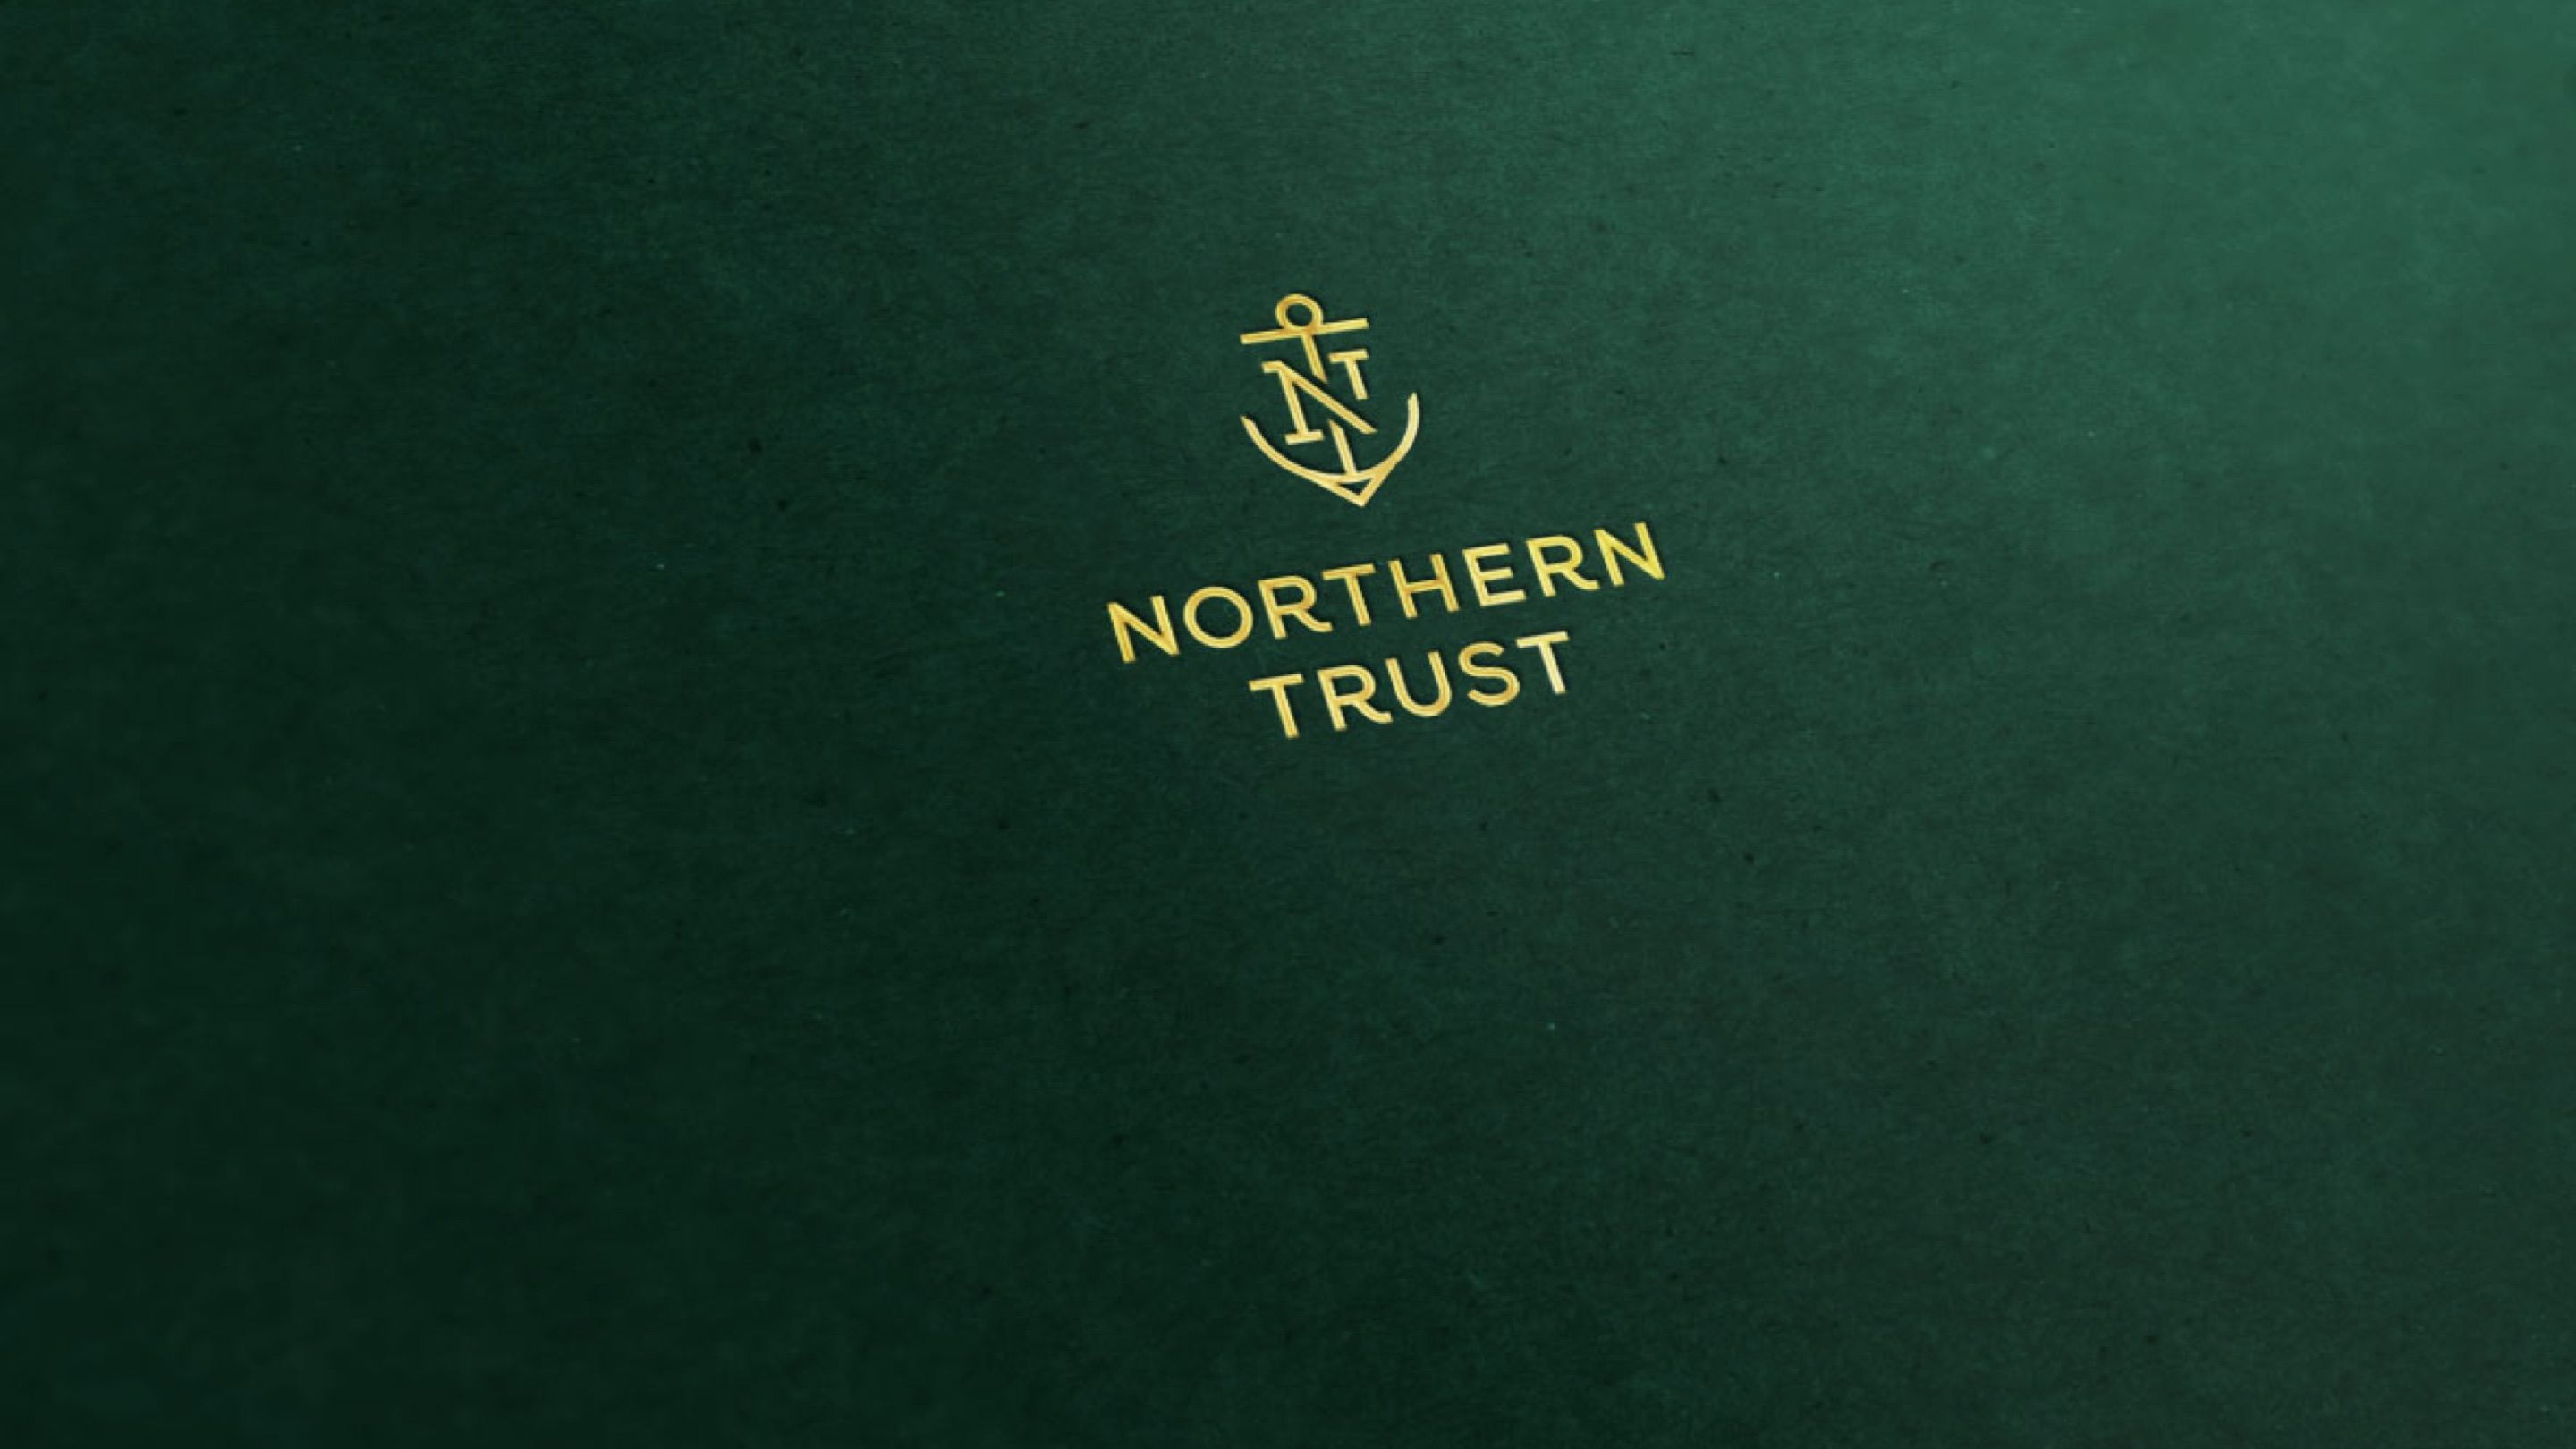 Northern Trust logo foil stamped